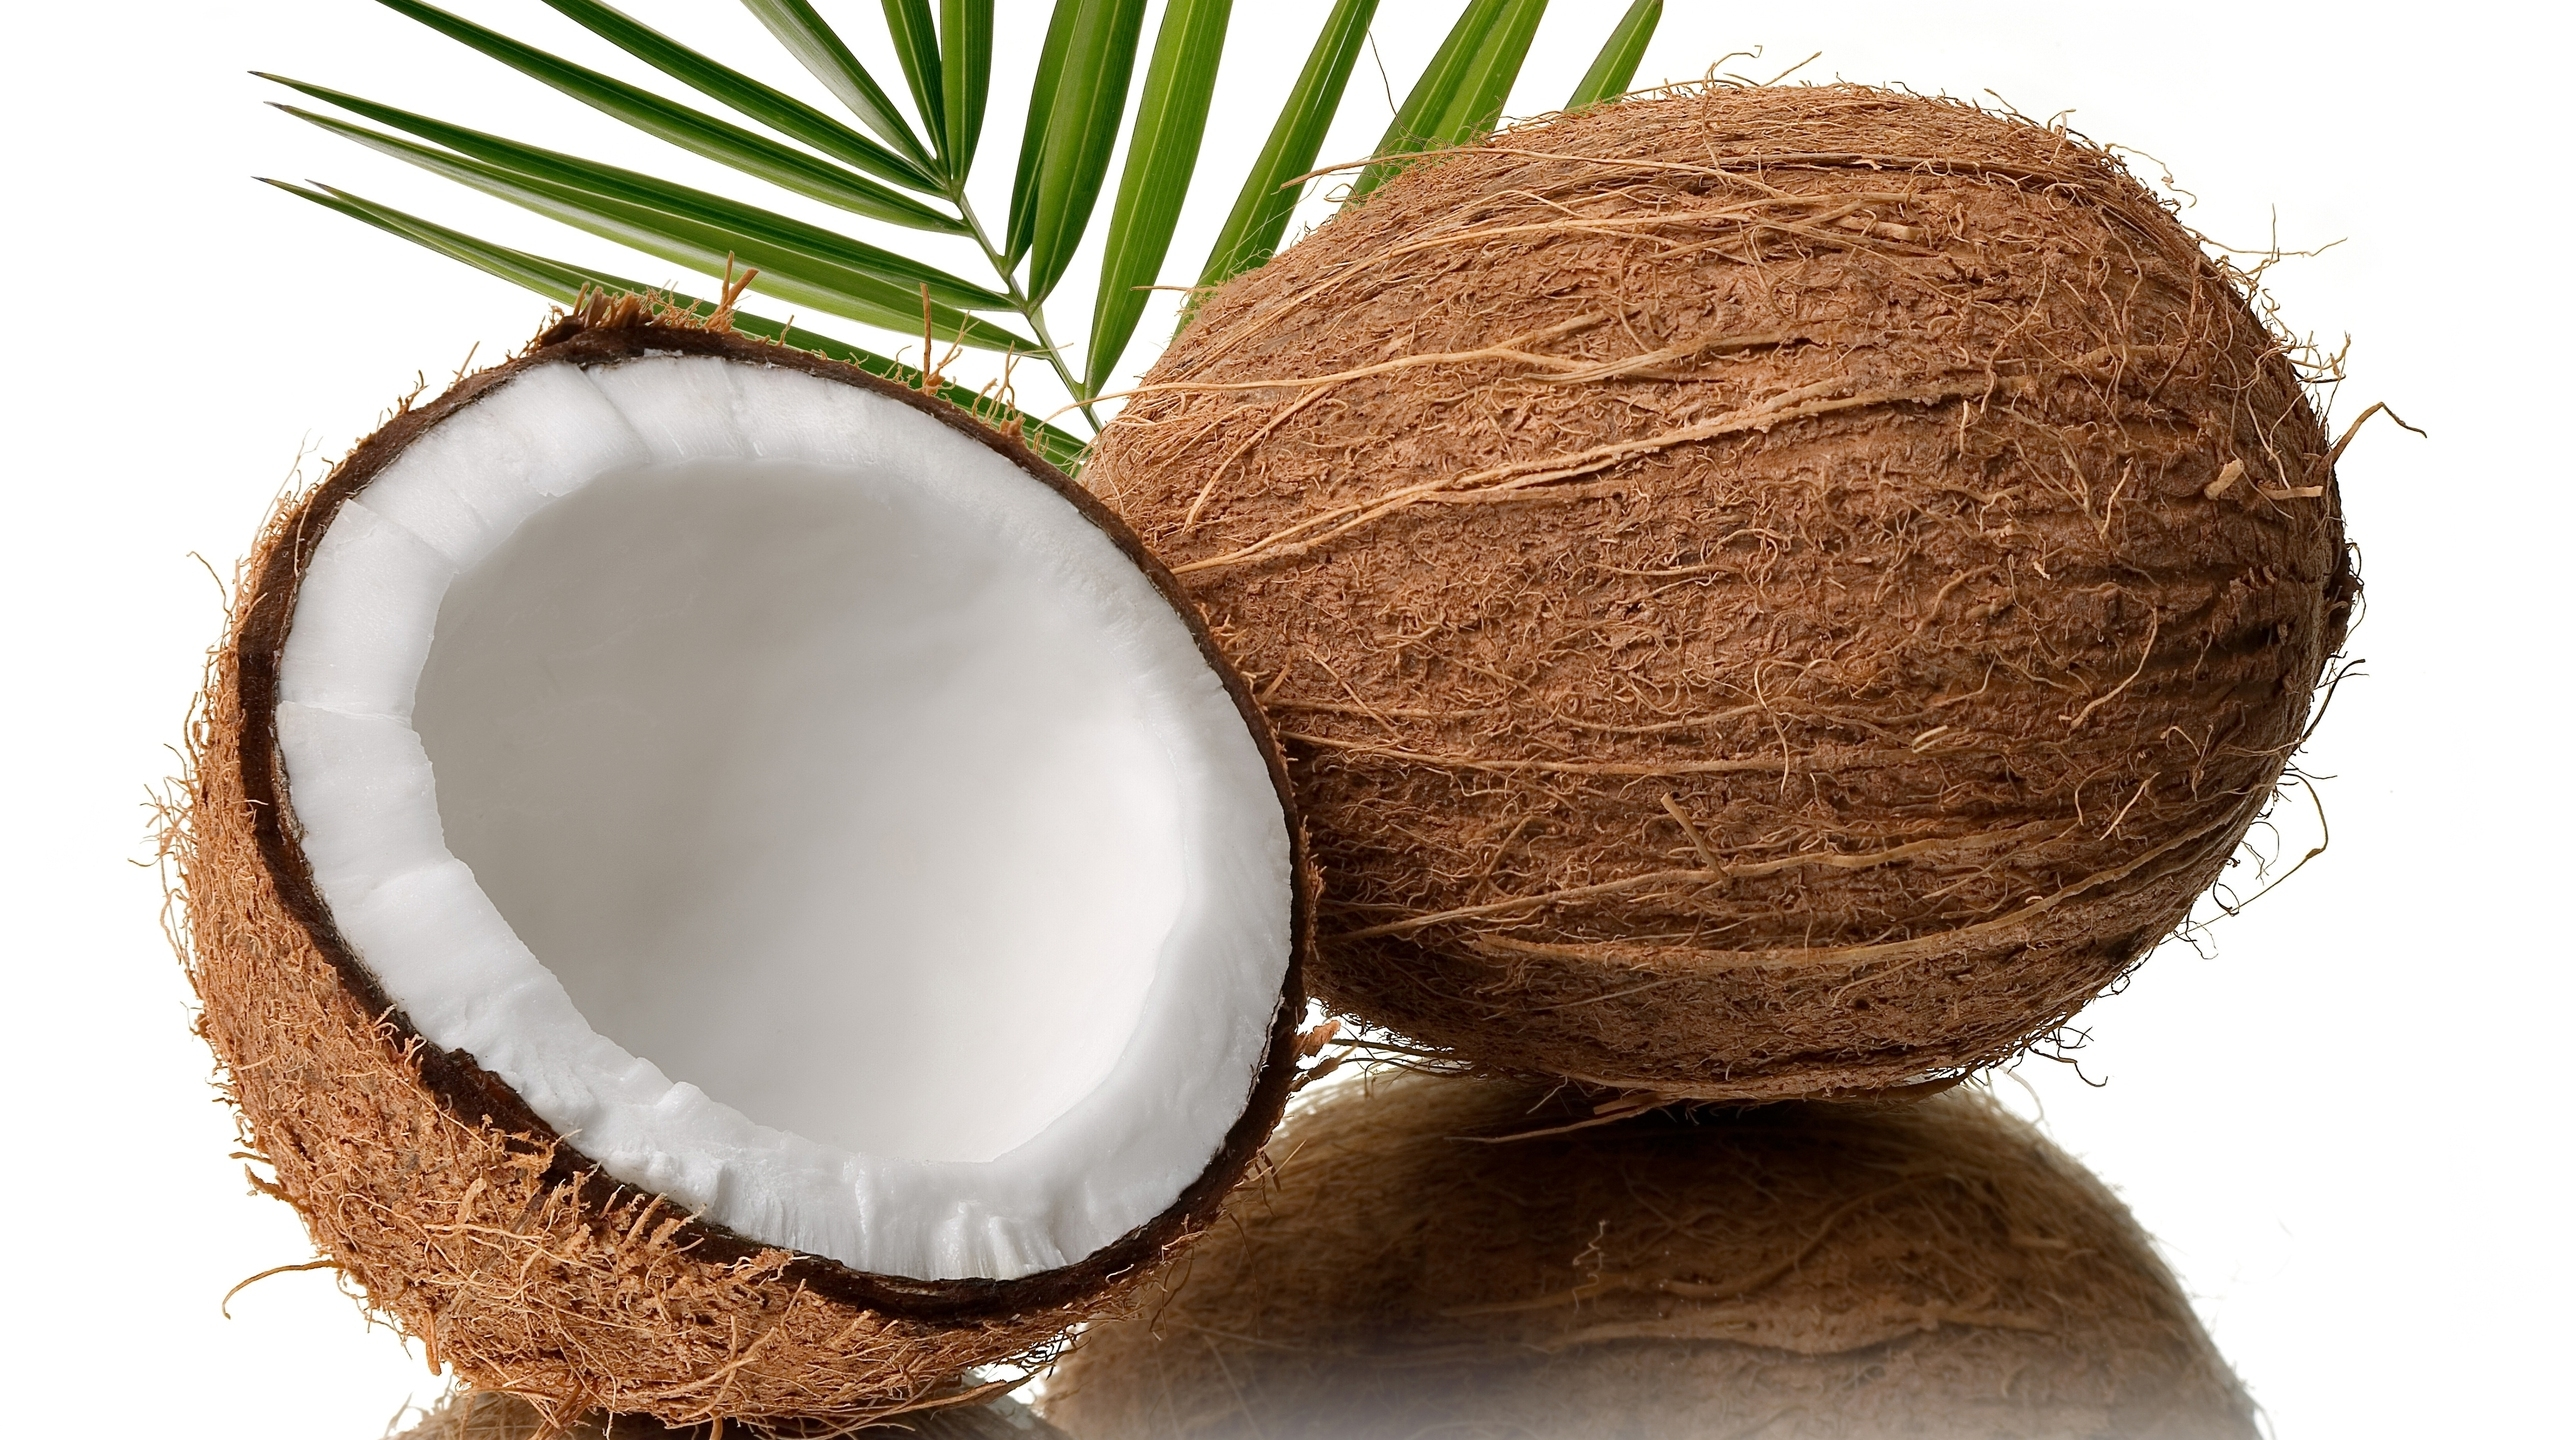 Coconut Pictures